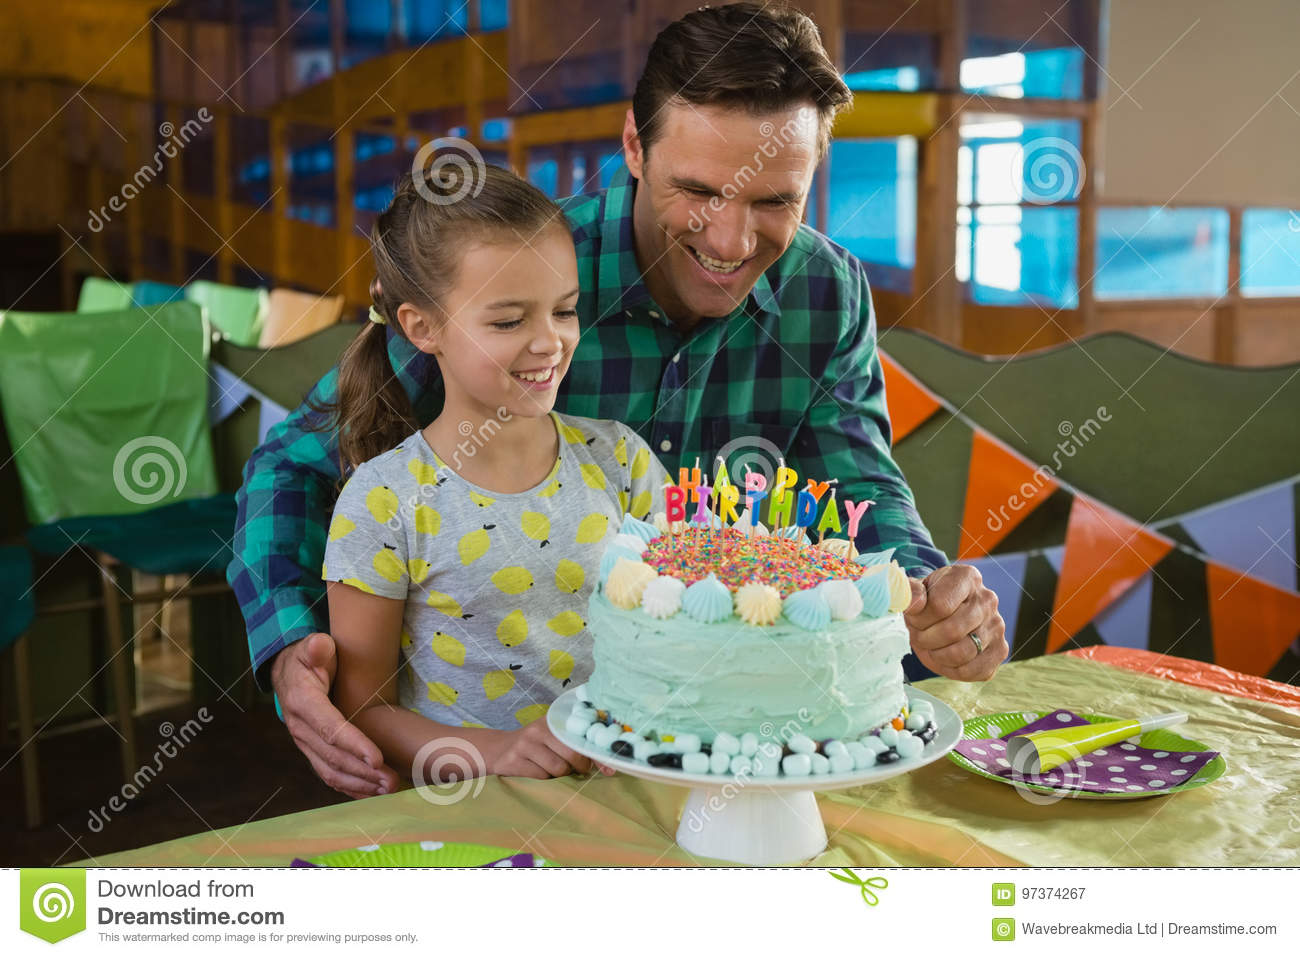 Father And Daughter With Birthday Cake Stock Image Image of cute